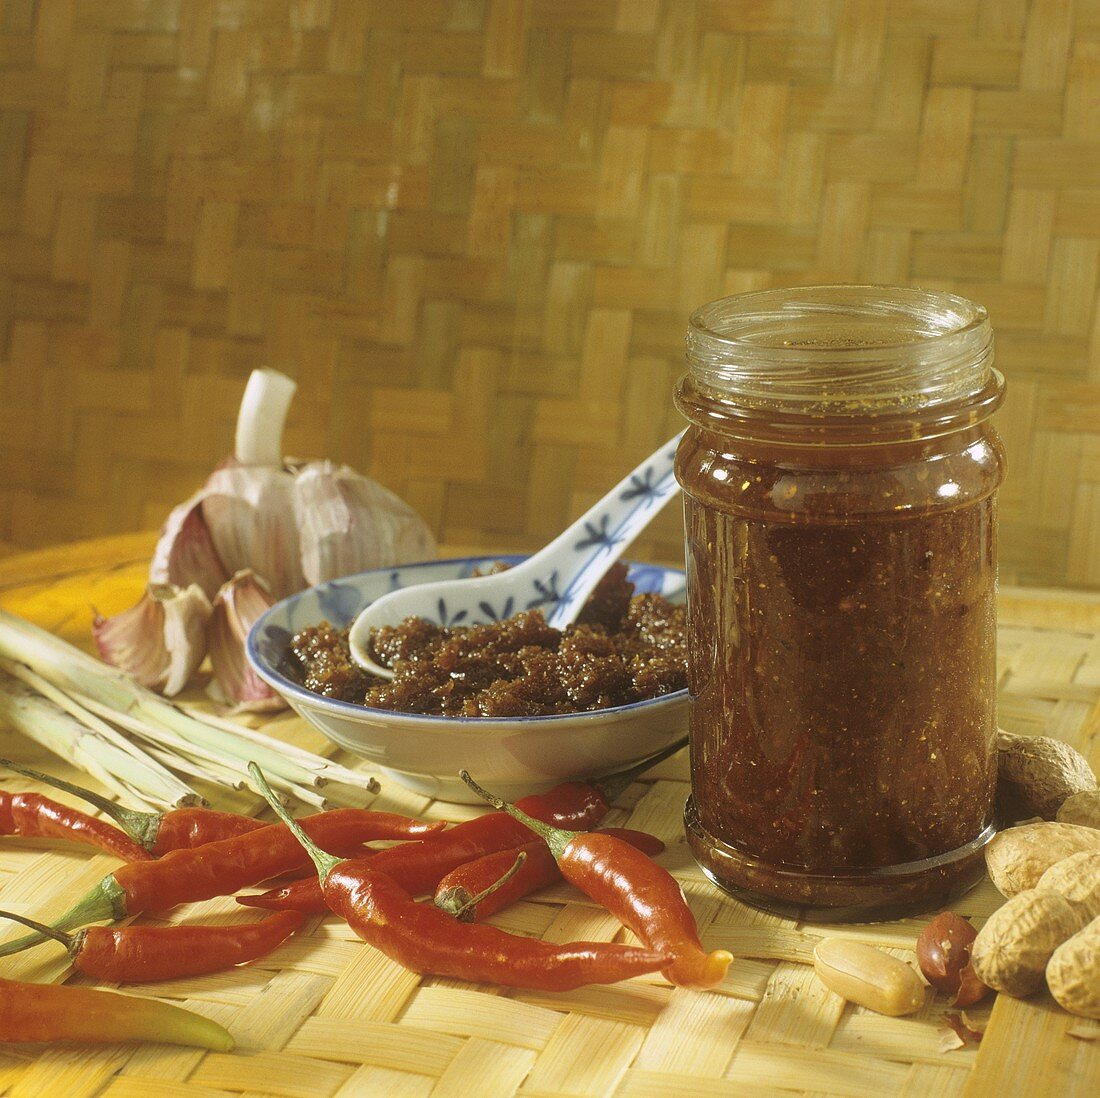 Spicy Chinese sauce (Sha-Cha sauce) in jar and bowl